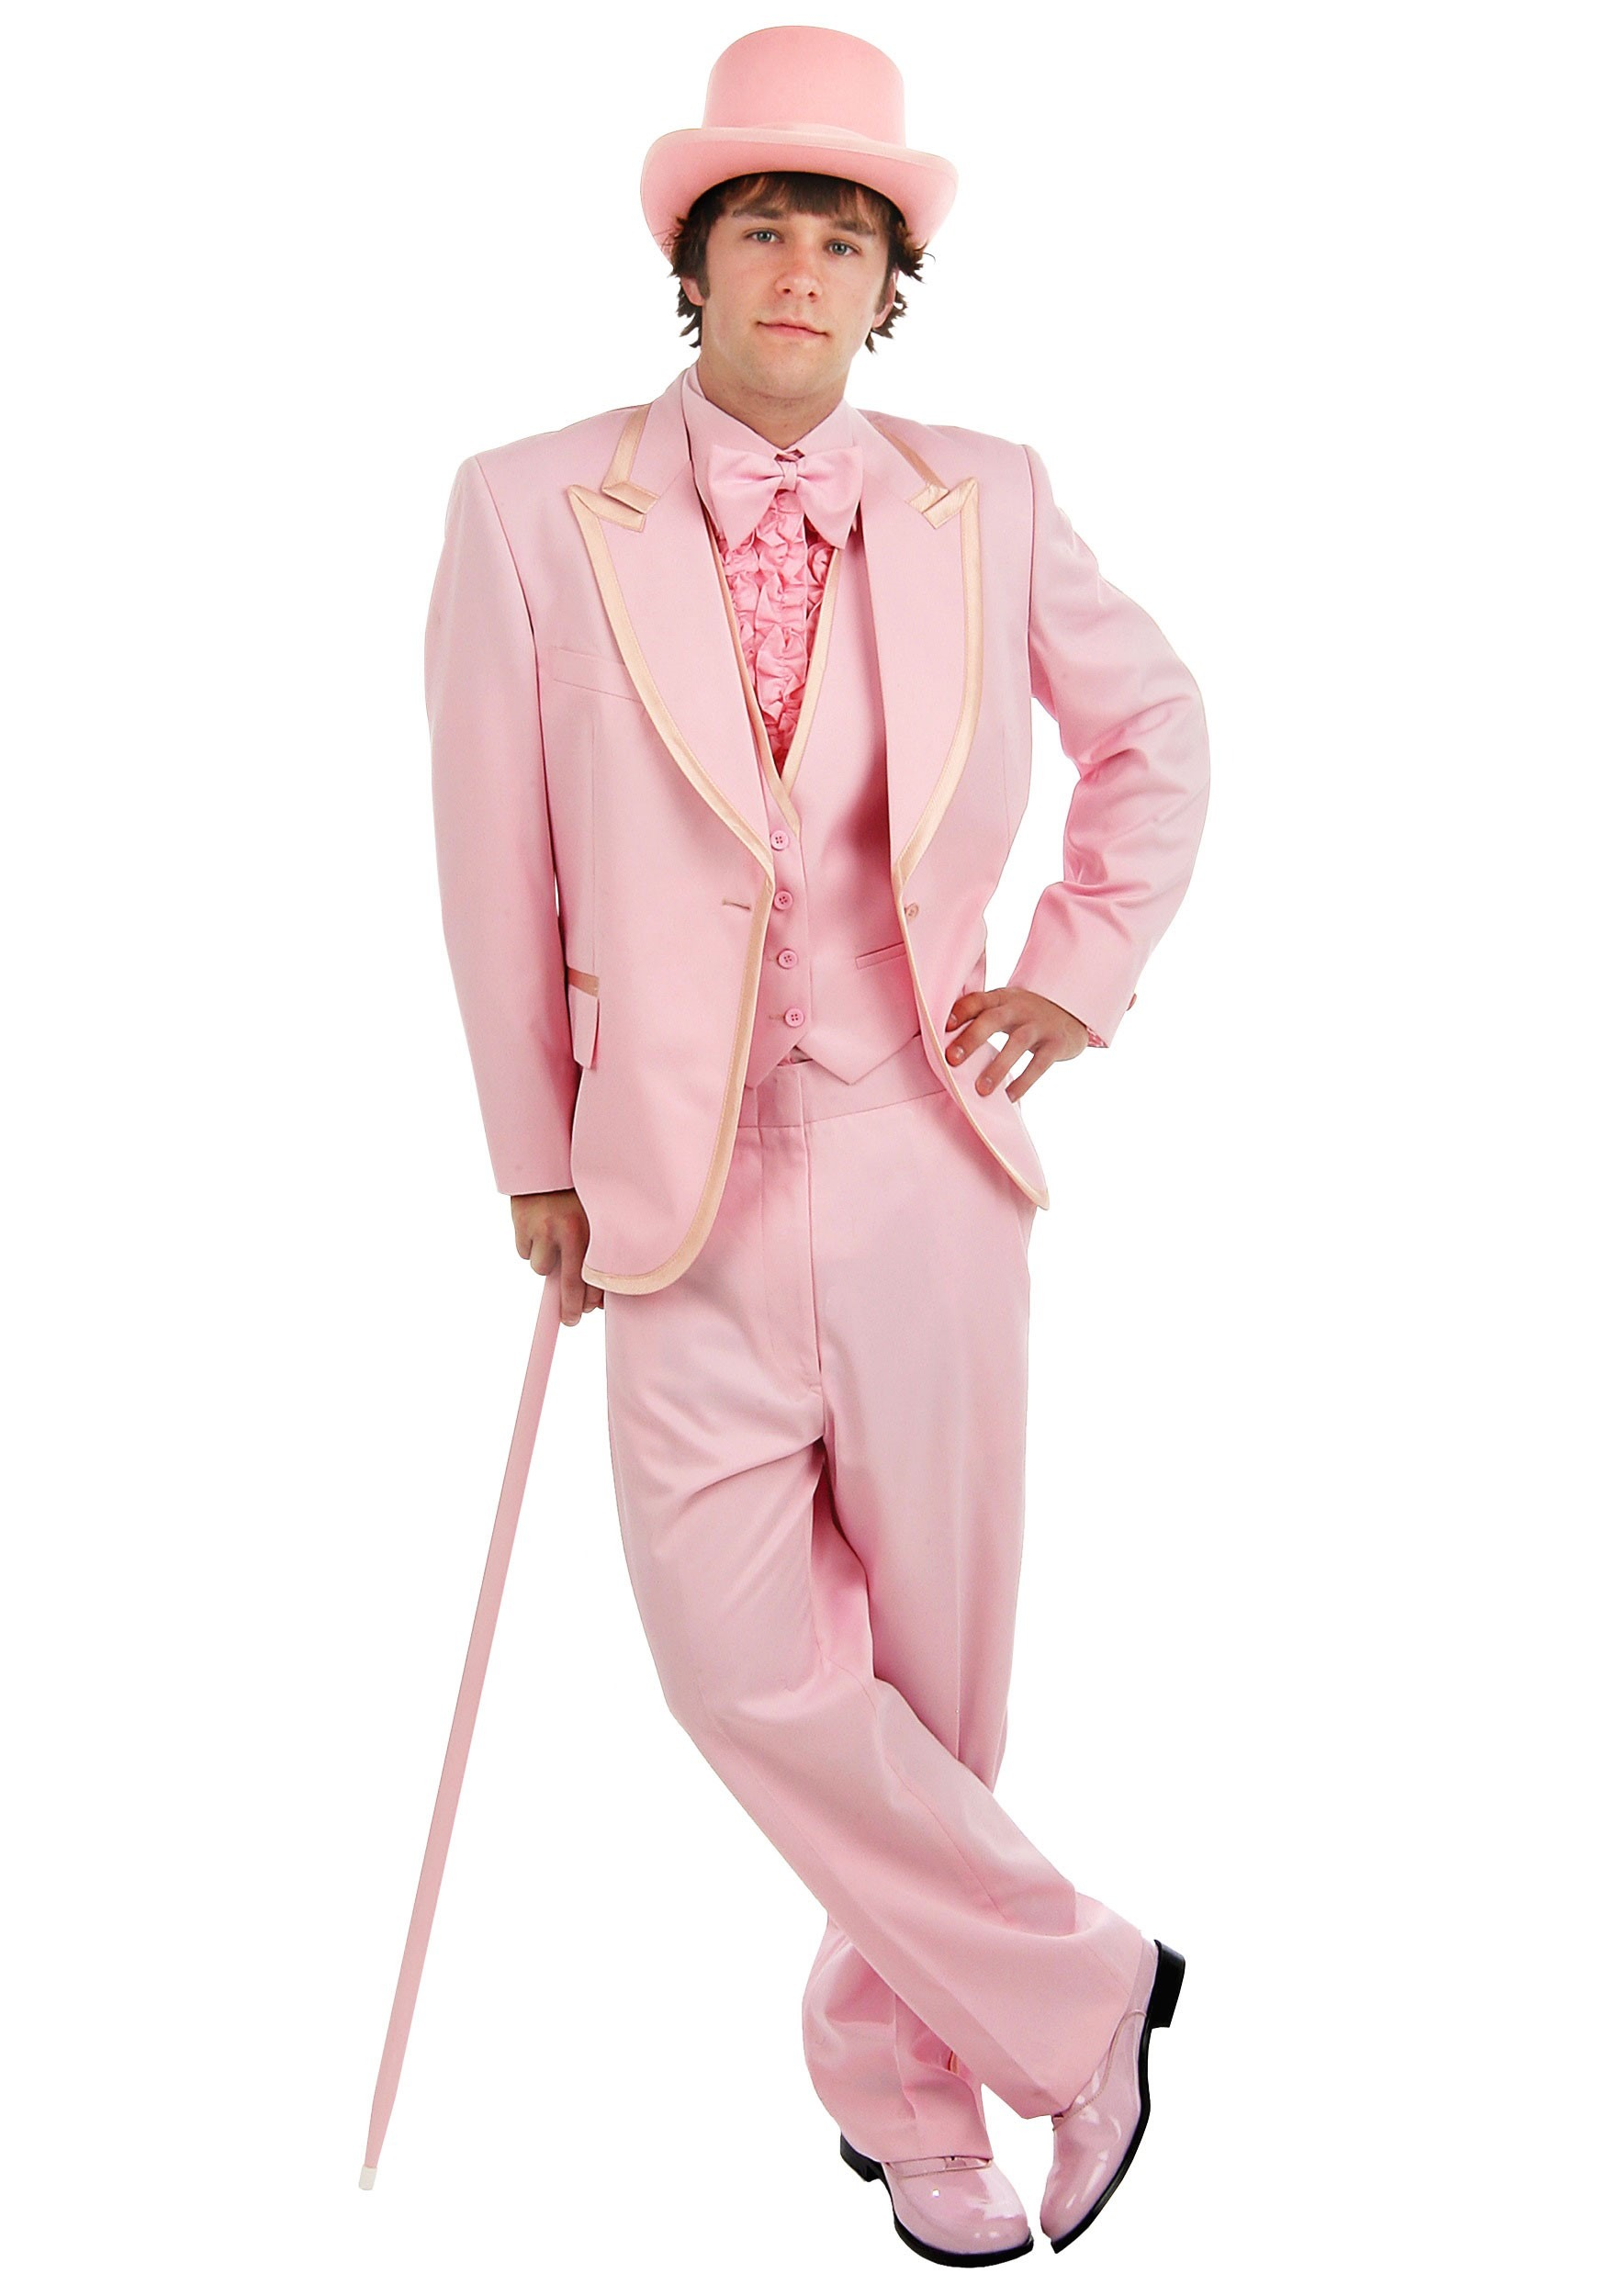 Pink Tuxedos - Men's Prom Pink Tuxedo - Mens Pink Suits